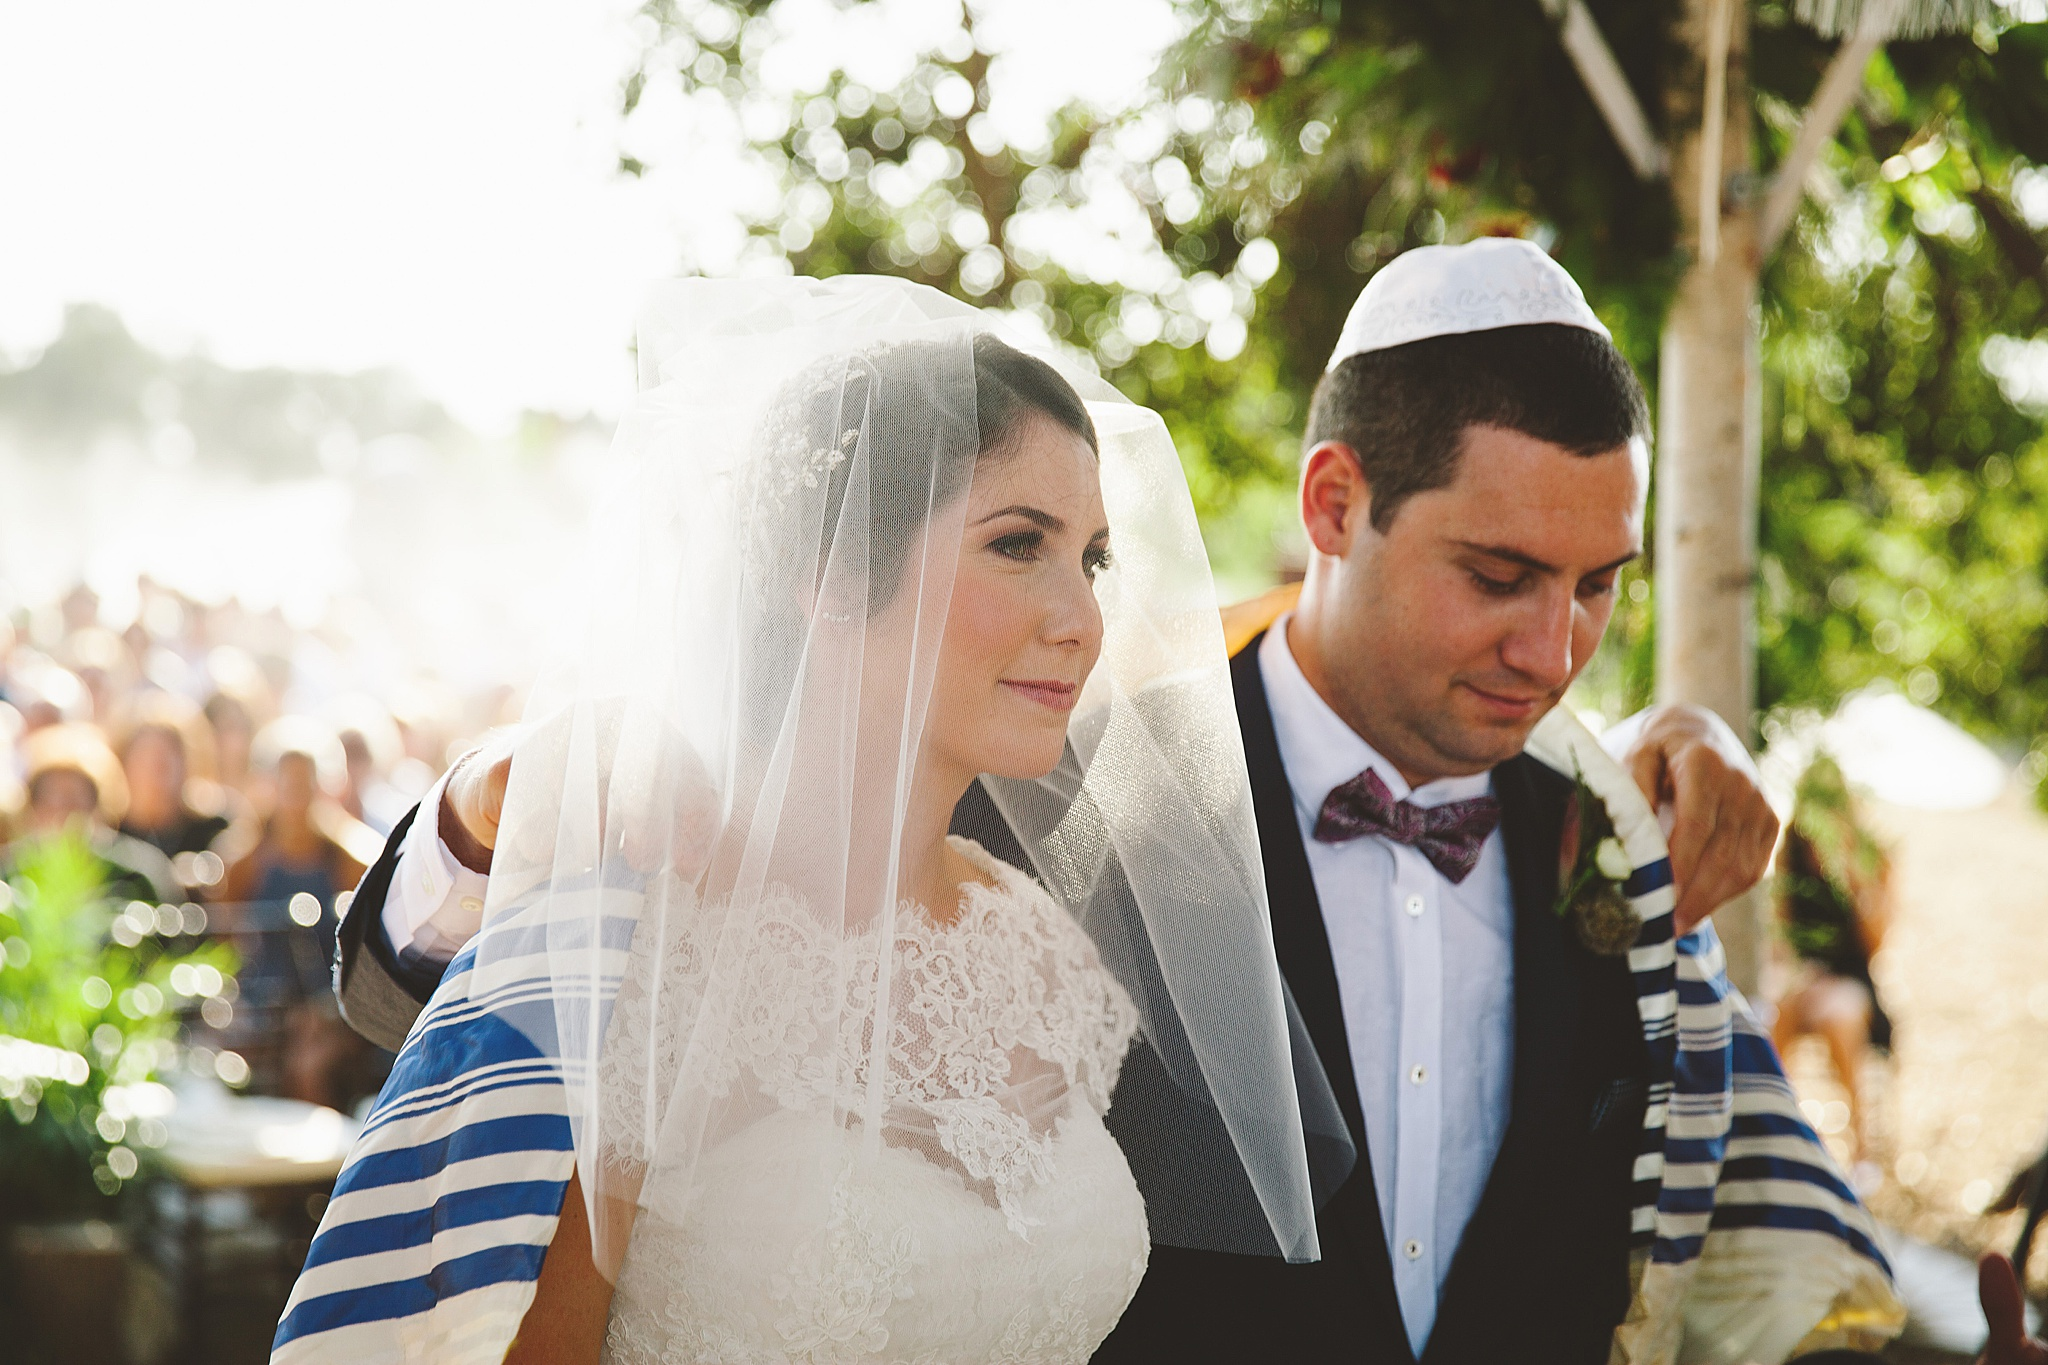 Traditional jewish wedding ceremony at outdoor LA wedding